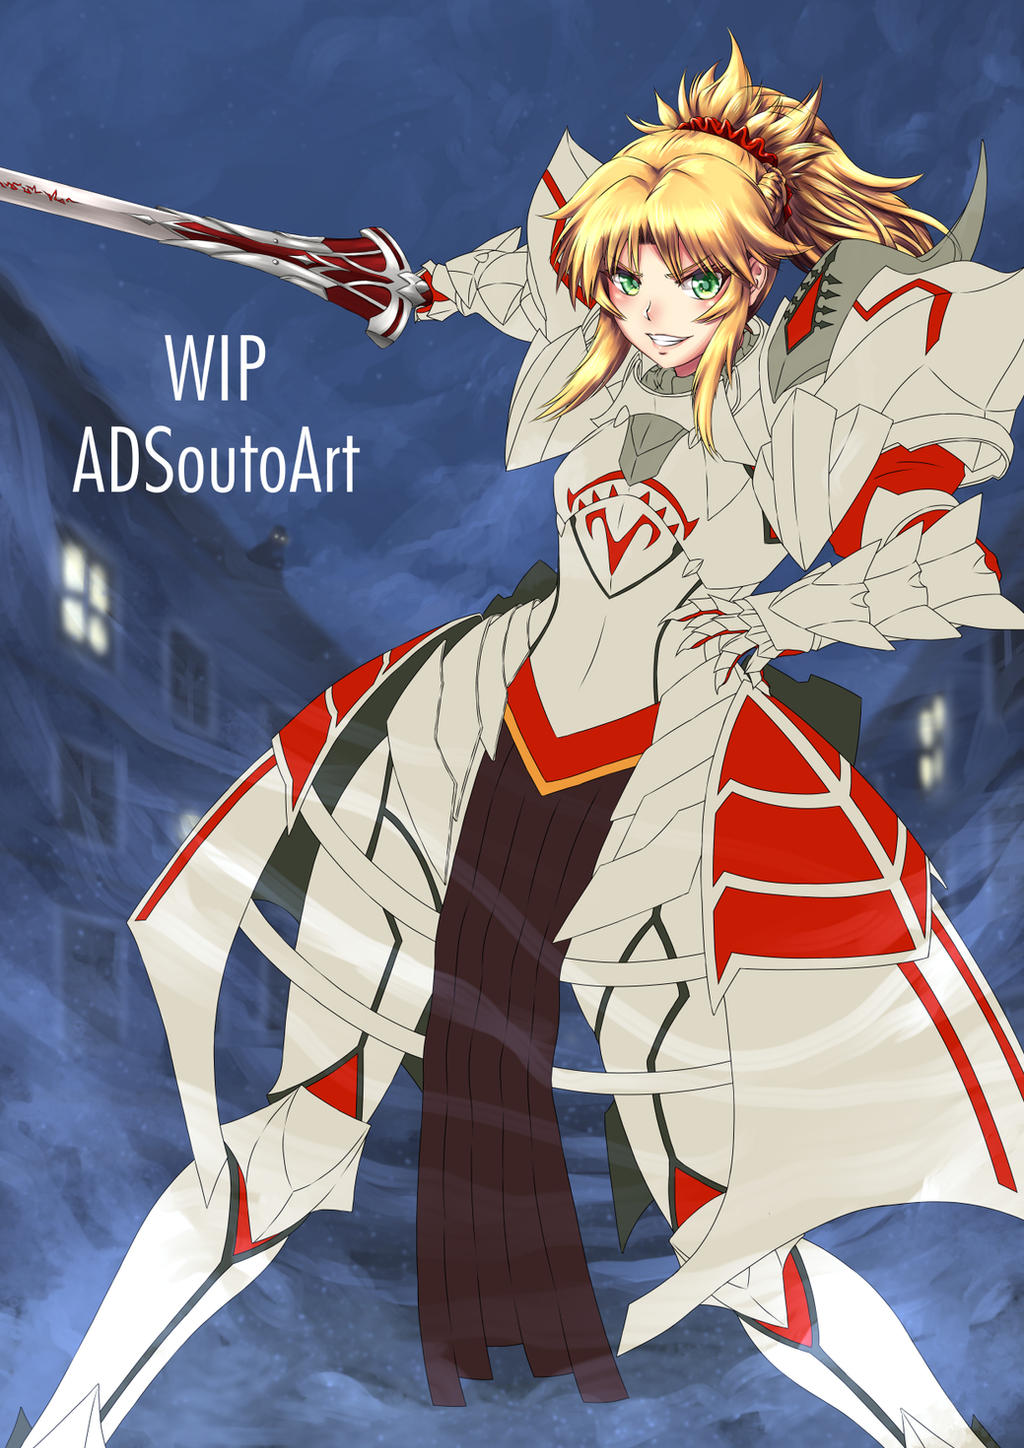 WIP Mordred Armor Armor Ver. by ADSouto